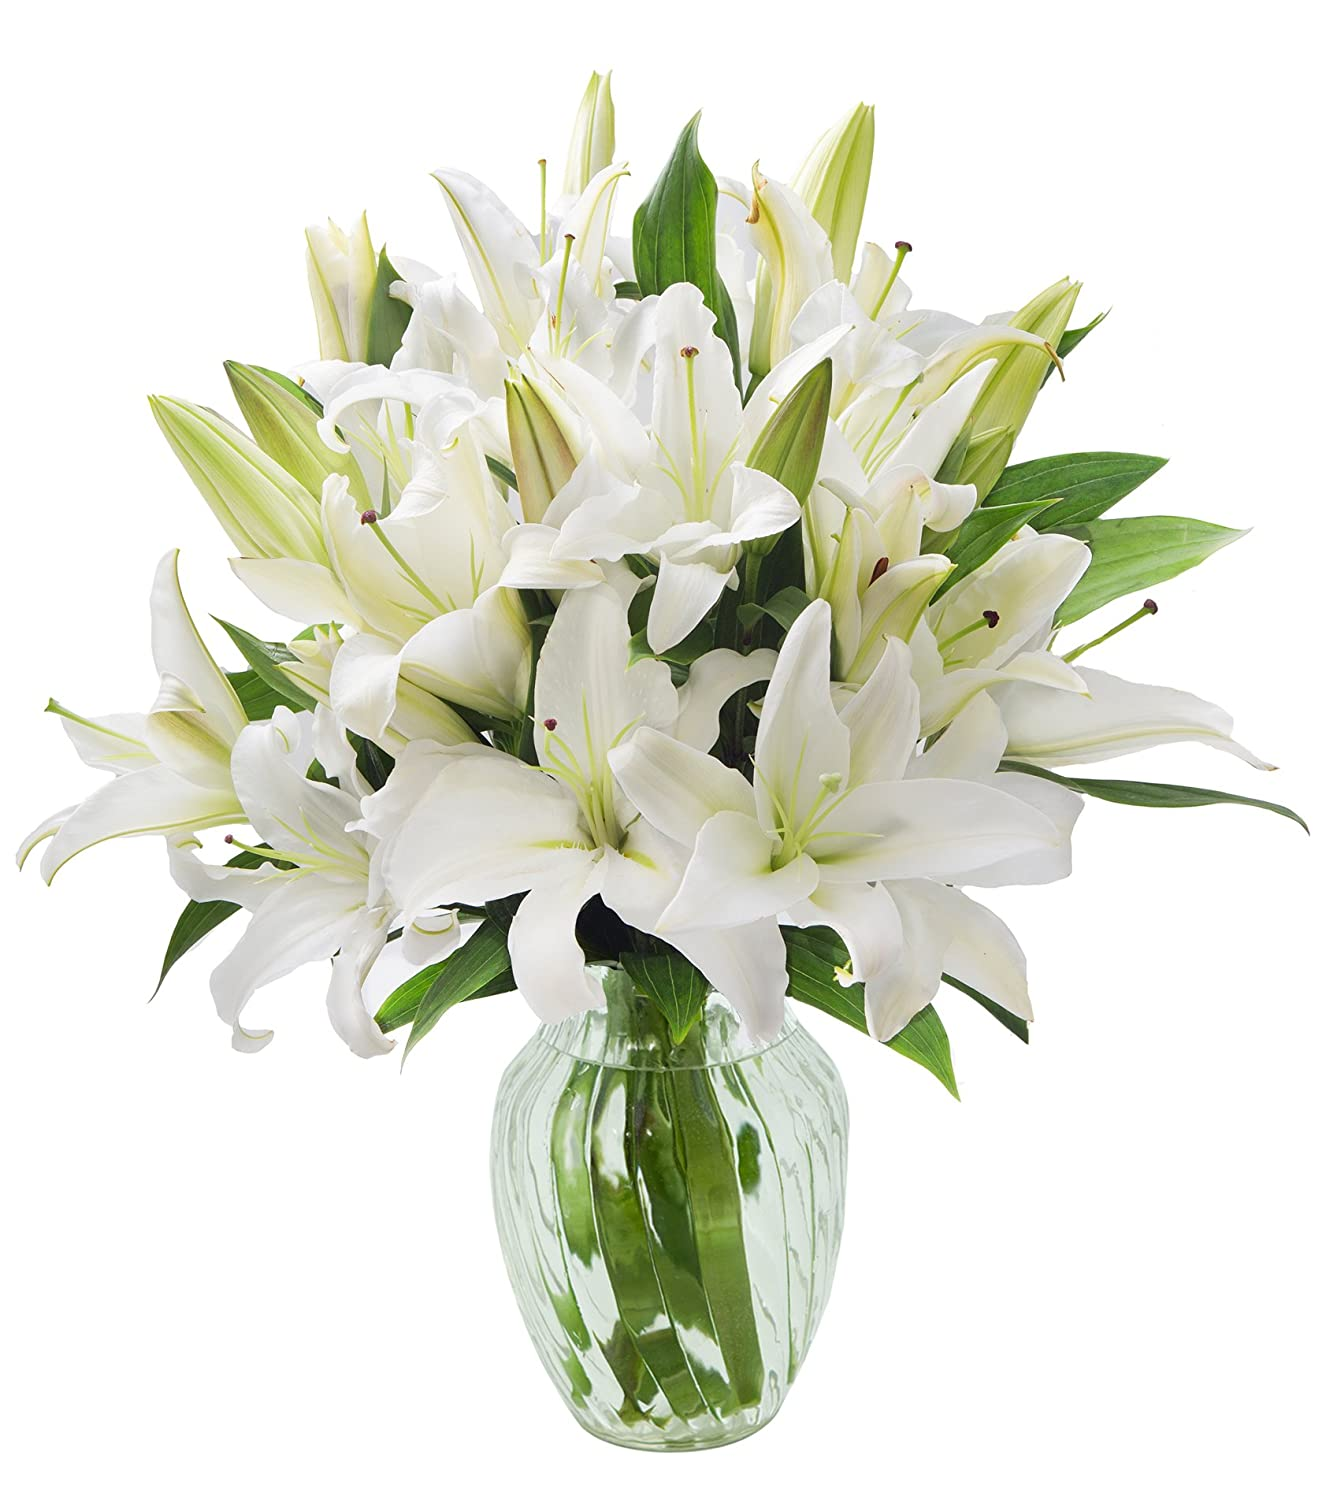 Amazon kabloom pure love white lily bouquet of 10 white lilies amazon kabloom pure love white lily bouquet of 10 white lilies with vase grocery gourmet food izmirmasajfo